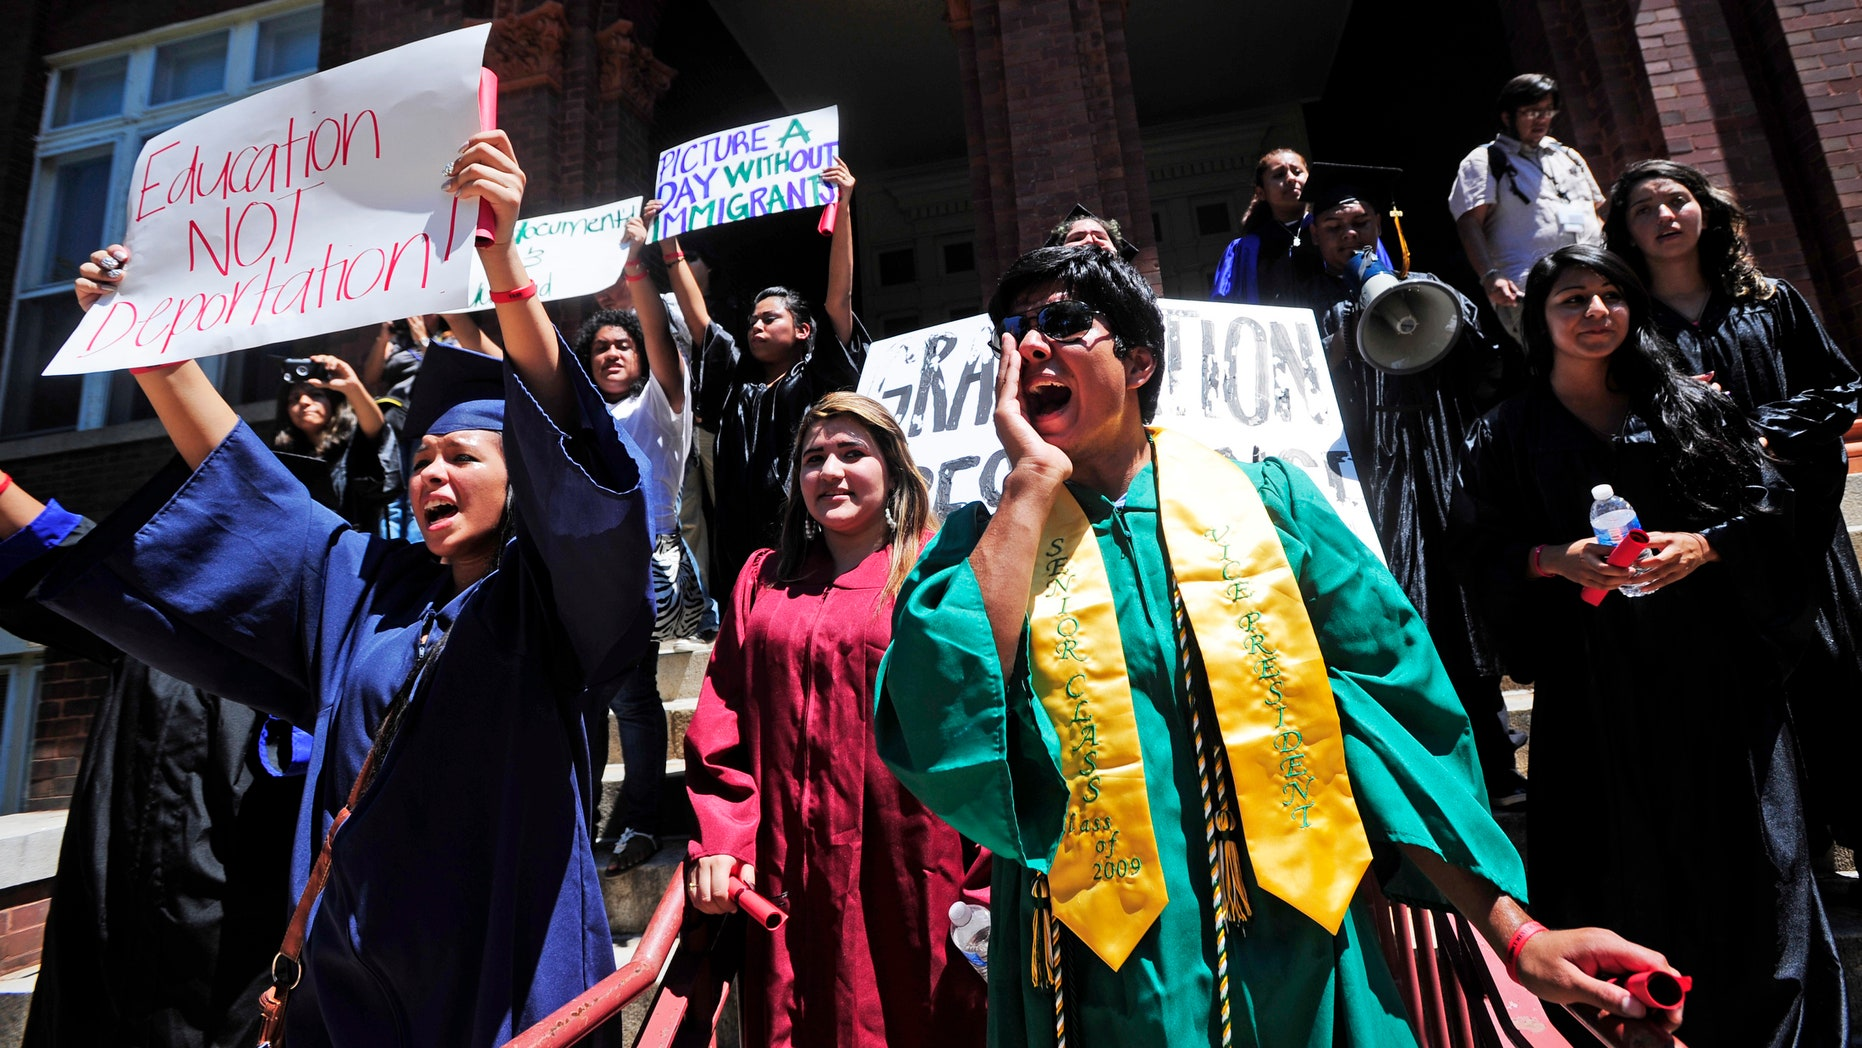 Aug. 23: Gustavo Madrigal, right, shouts outside the admissions office during a protest at the University of Georgia. The group gathered to protest a new university system policy on the admission of undocumented immigrants, the latest in a string of demonstrations staged in recent months in response to the new immigration policy.